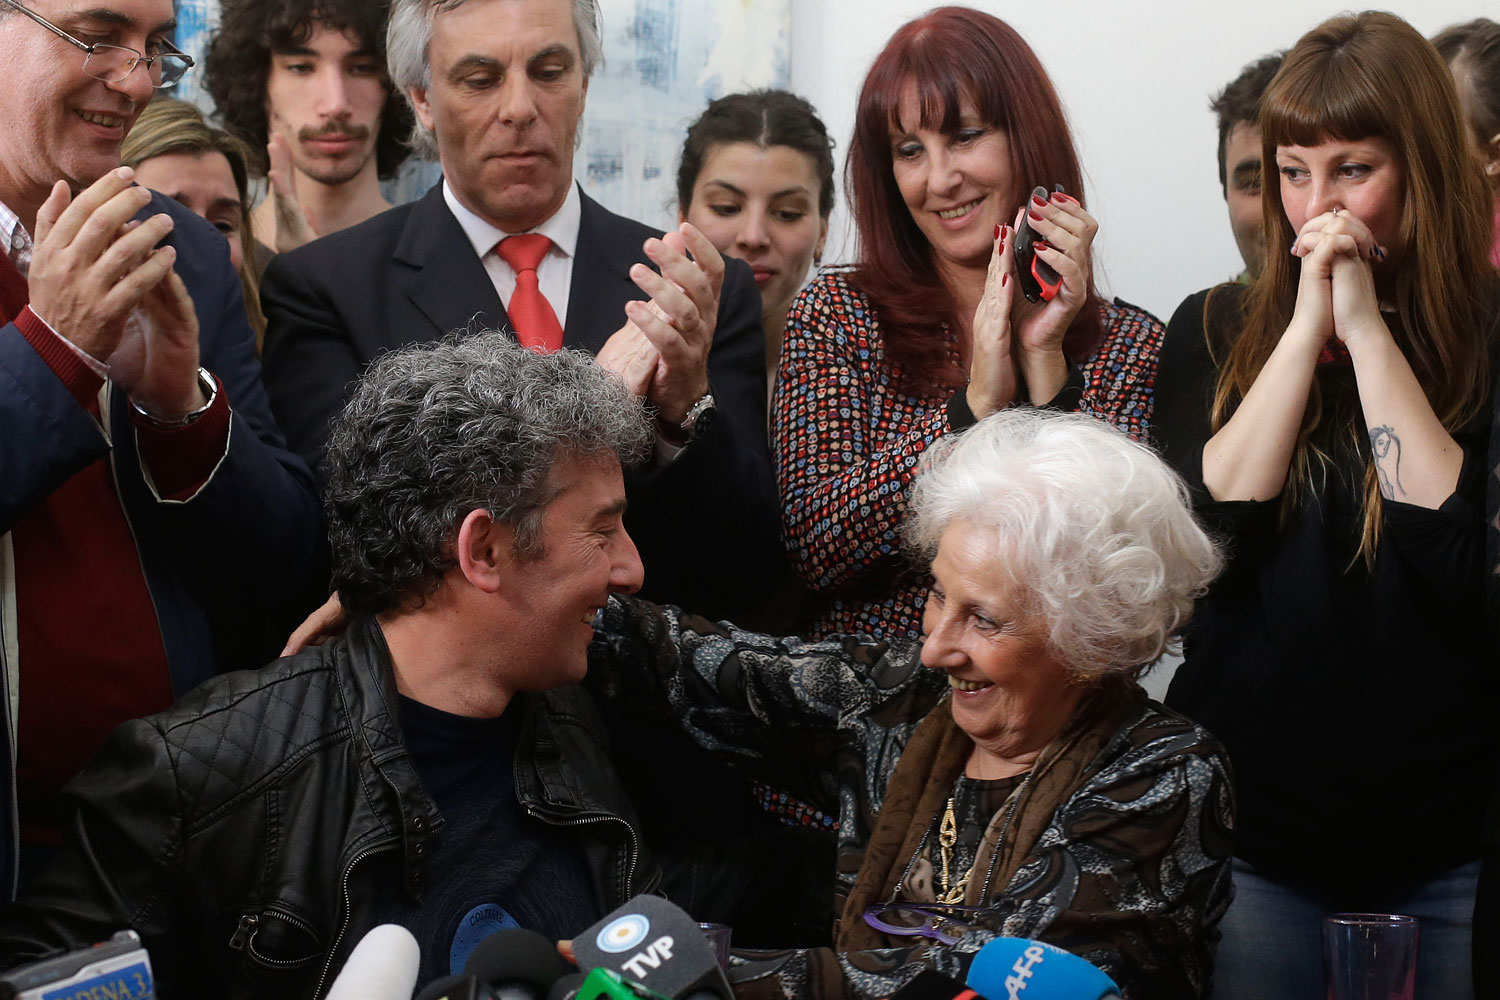 Estela de Carlotto, president of Grandmothers of Plaza de Mayo, right, and her grandson Ignacio Hurban, left, hug during a news conference in Buenos Aires, Aug. 8, 2014.